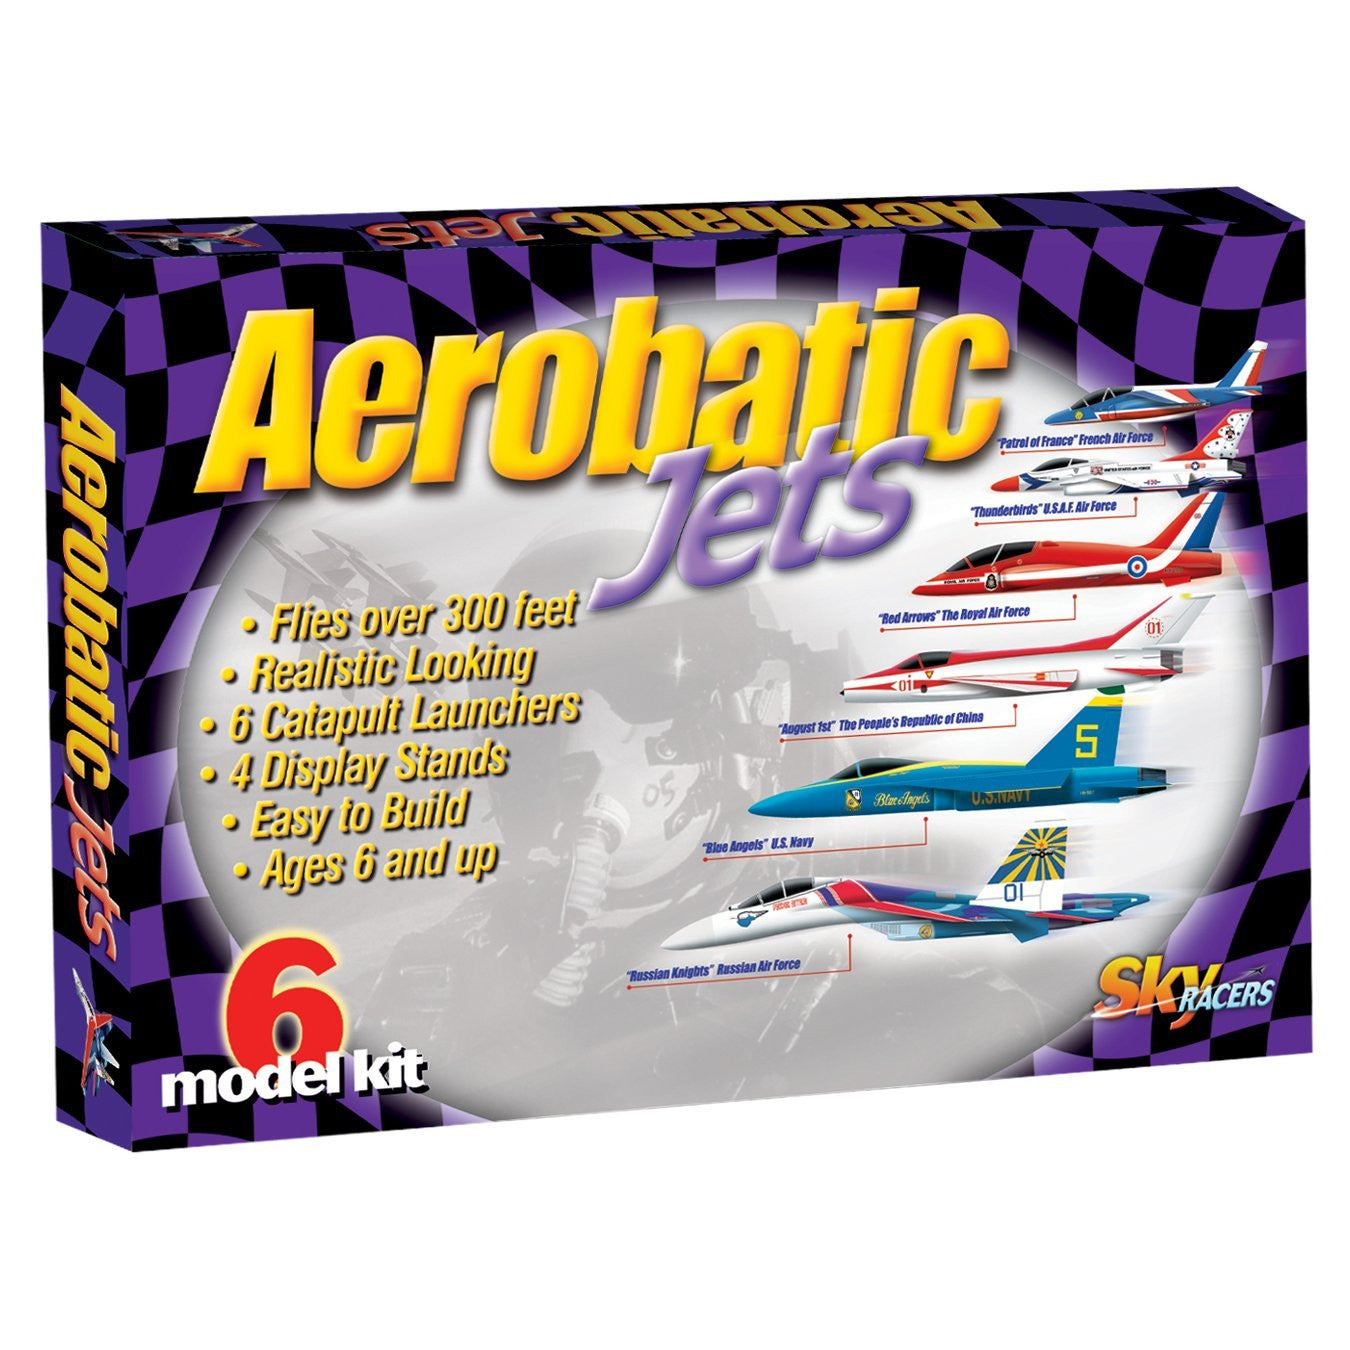 Be Amazing Toys Aerobatic Jets 9300